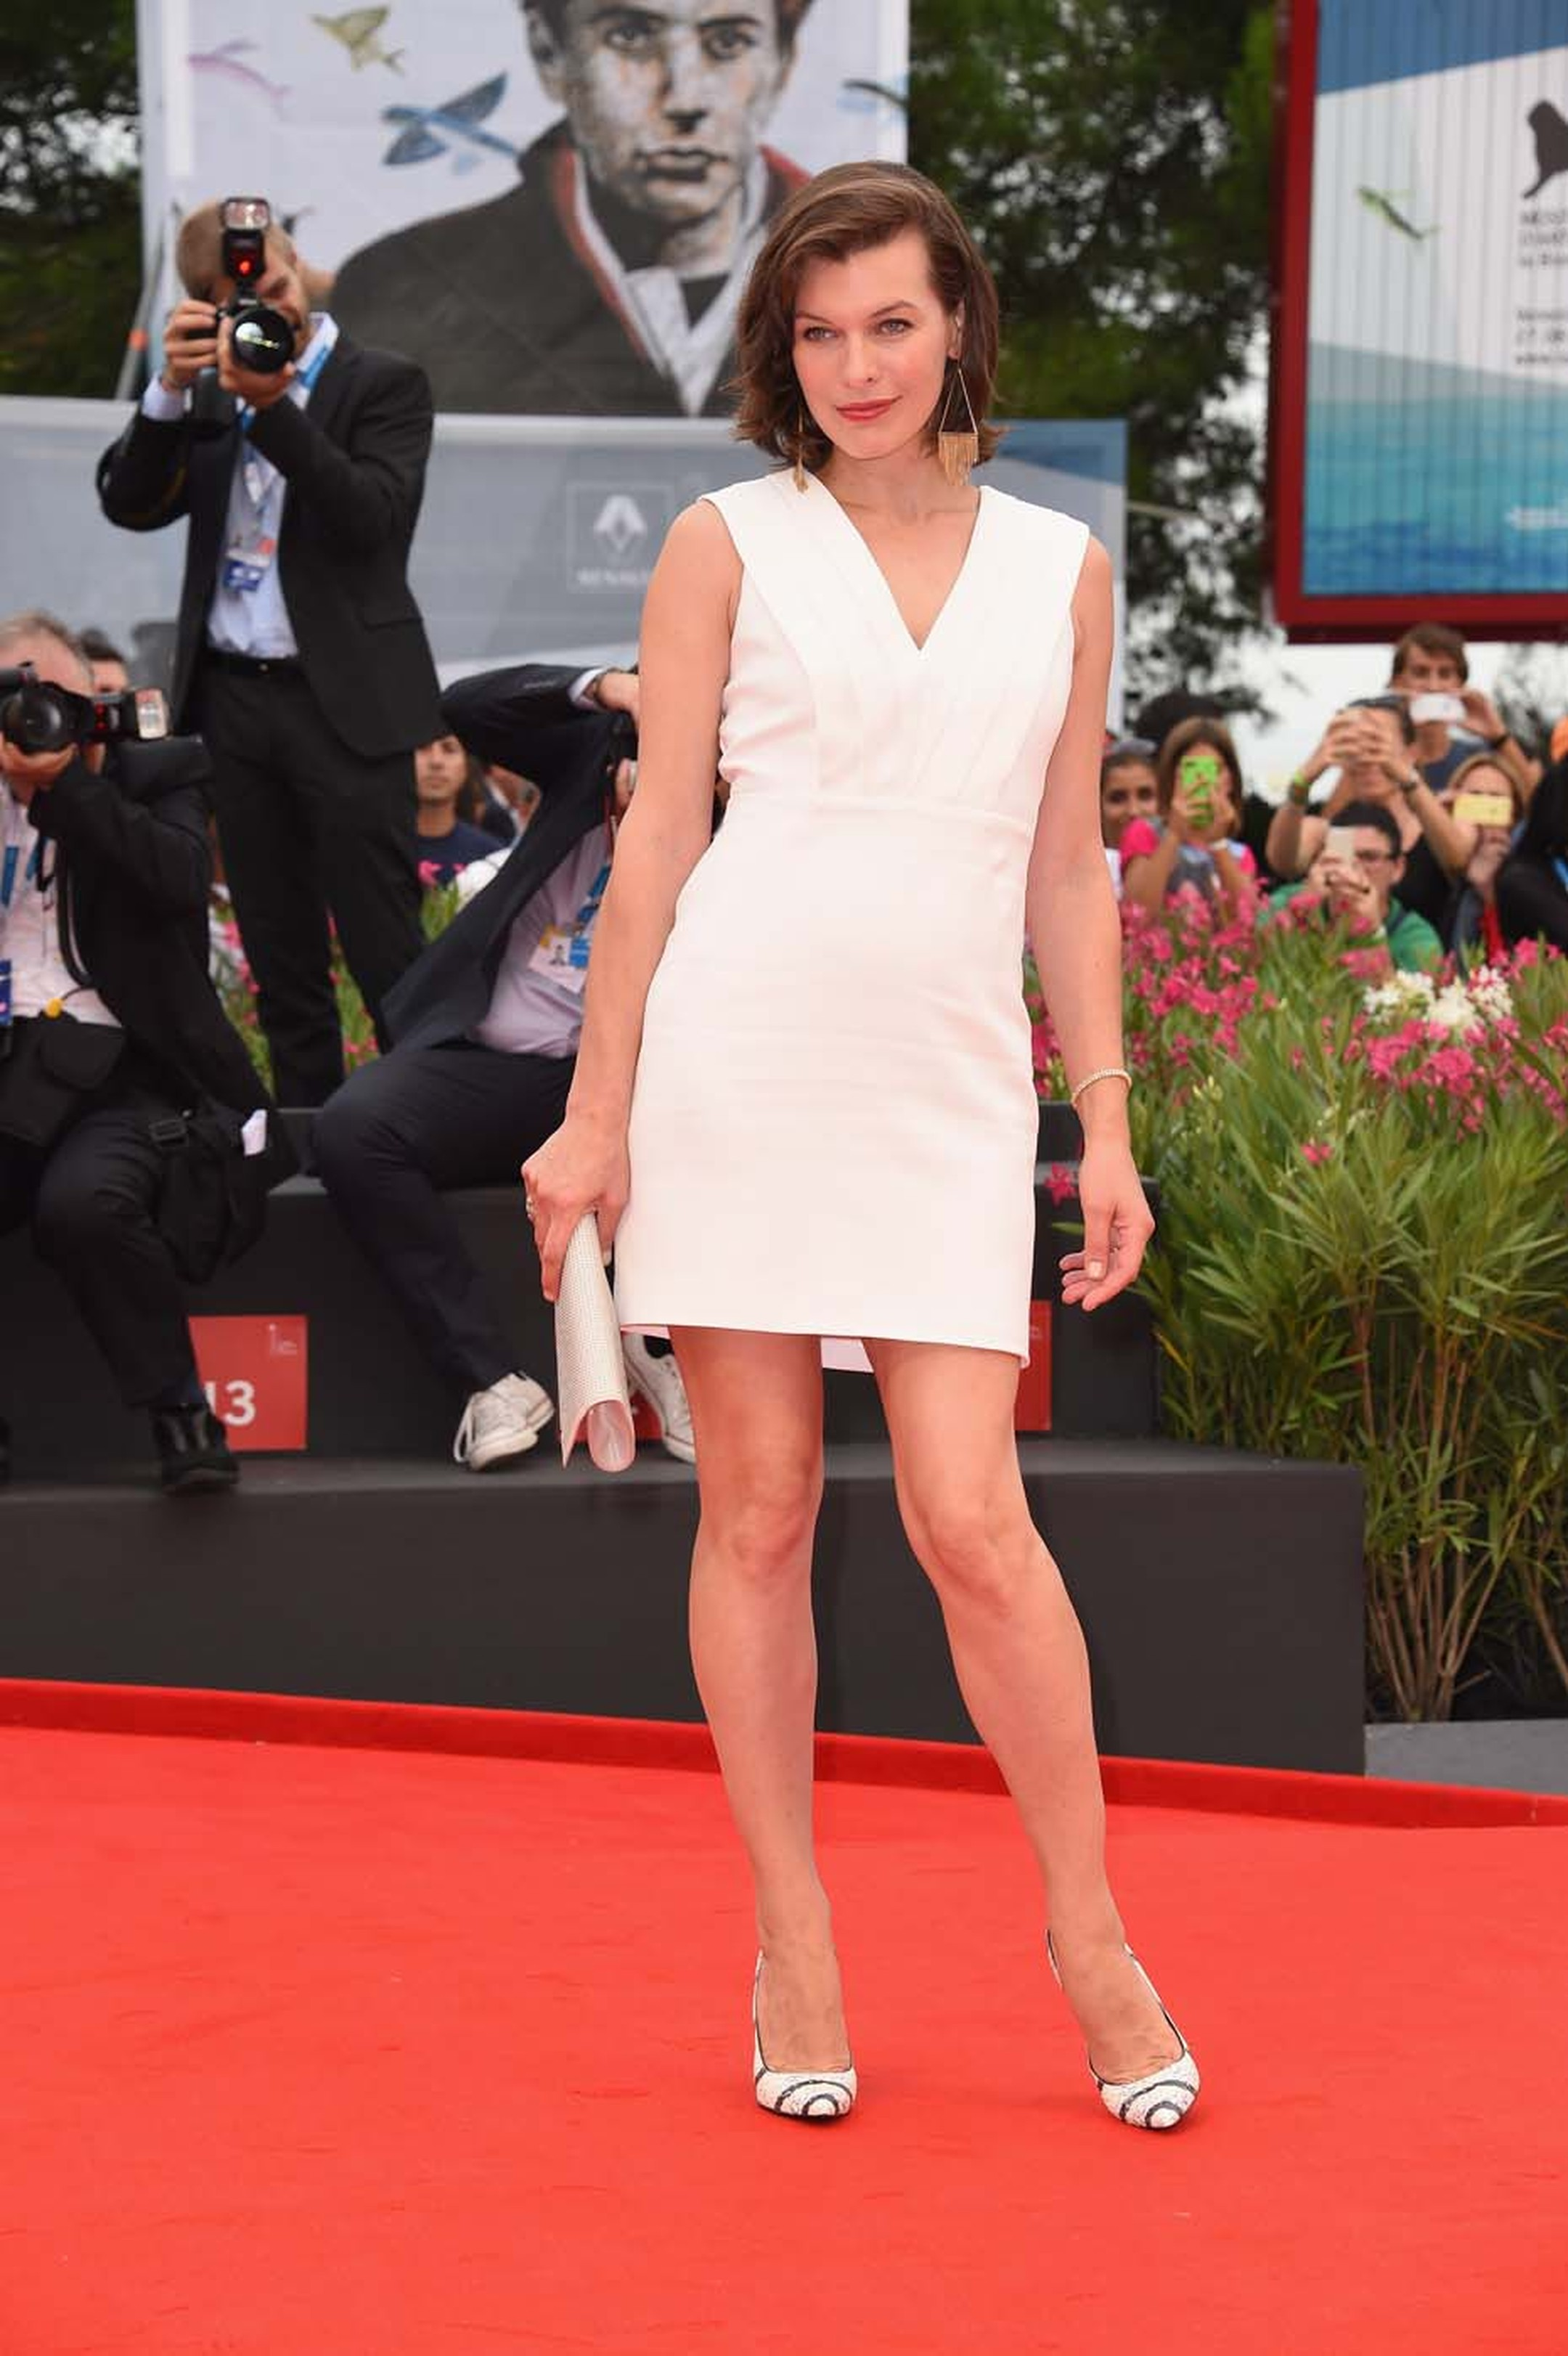 Actress Milla Jovovich wears the Jaeger-LeCoultre 101 Queen's watch while attending the Cymbeline Premiere at the Venice Film Festival.